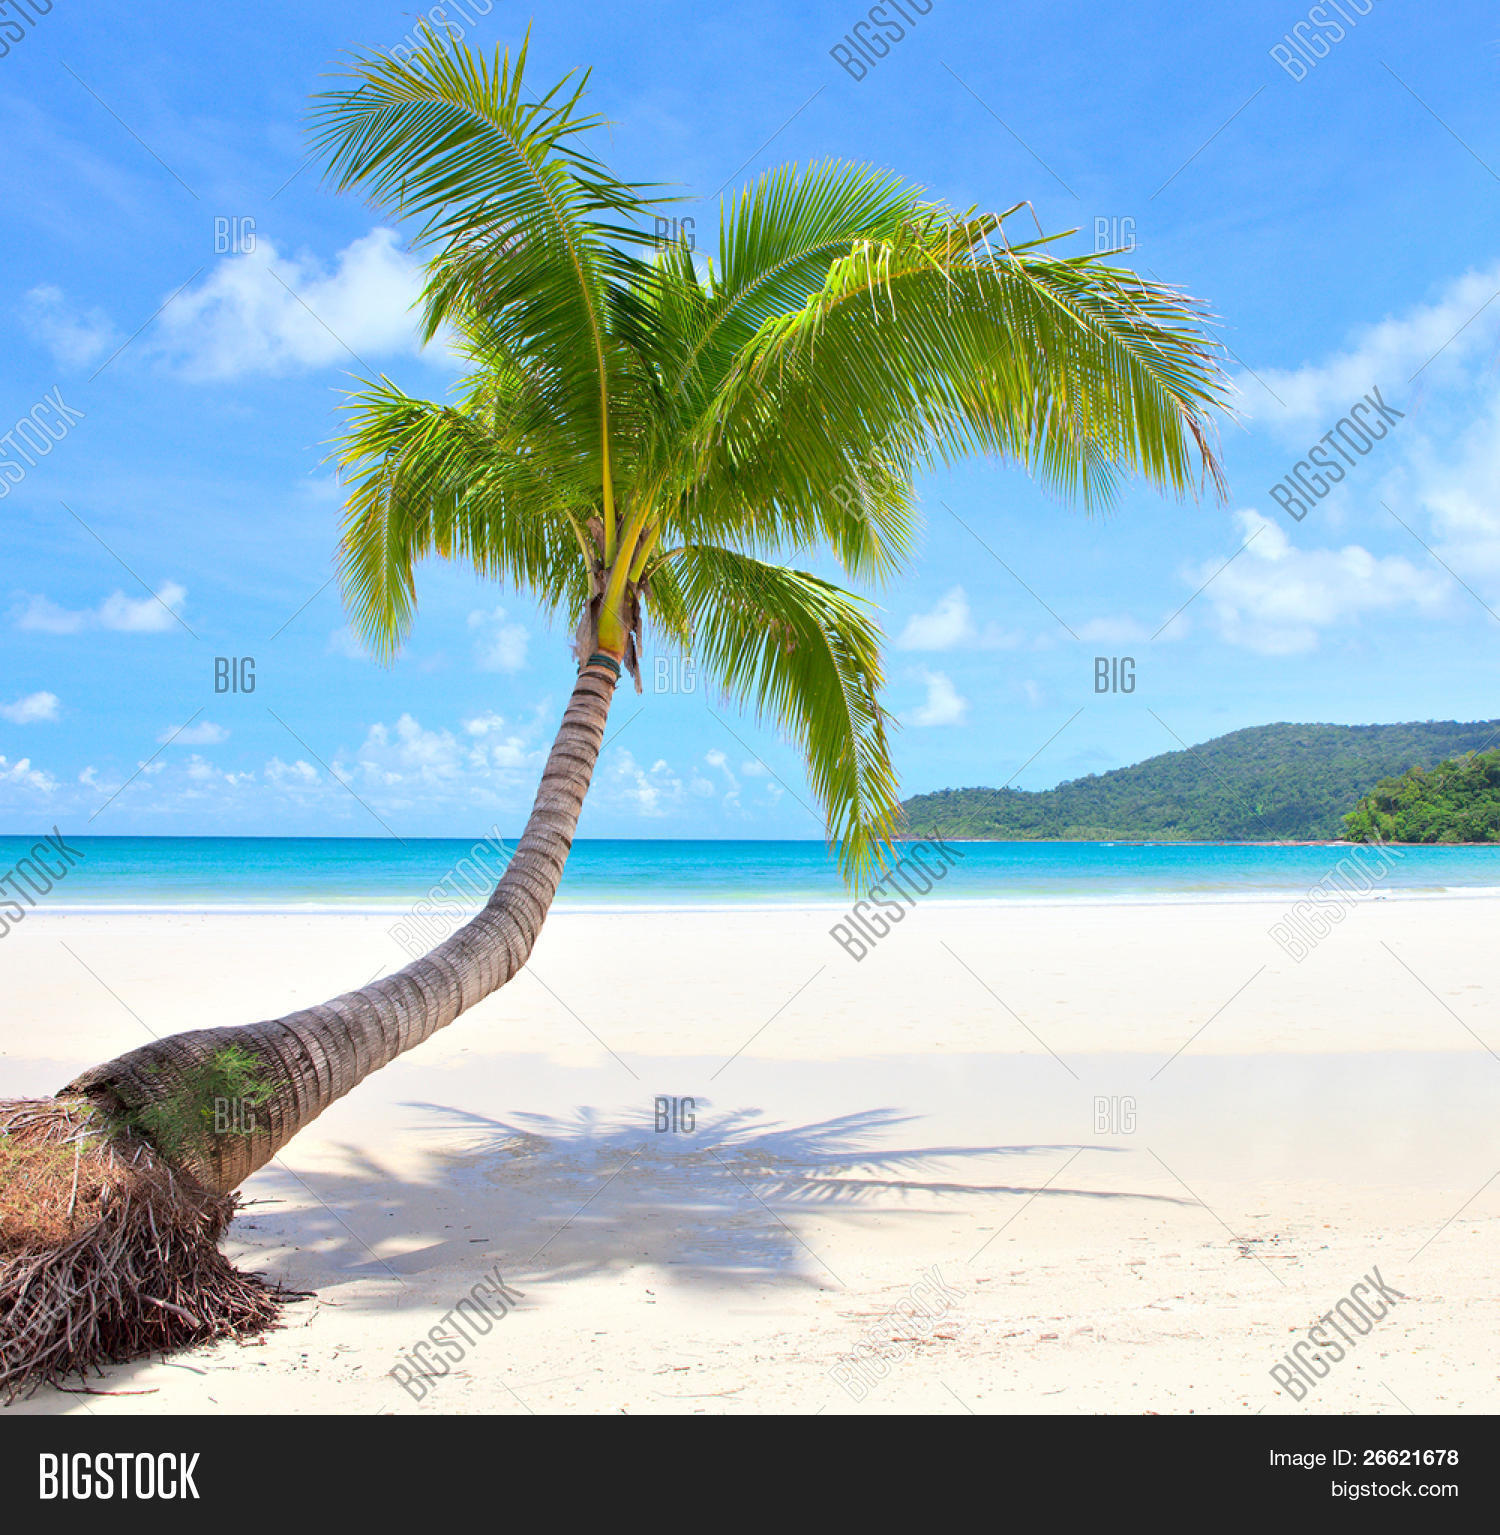 Beach Island: Beach Scene On Beautiful Island Image & Photo